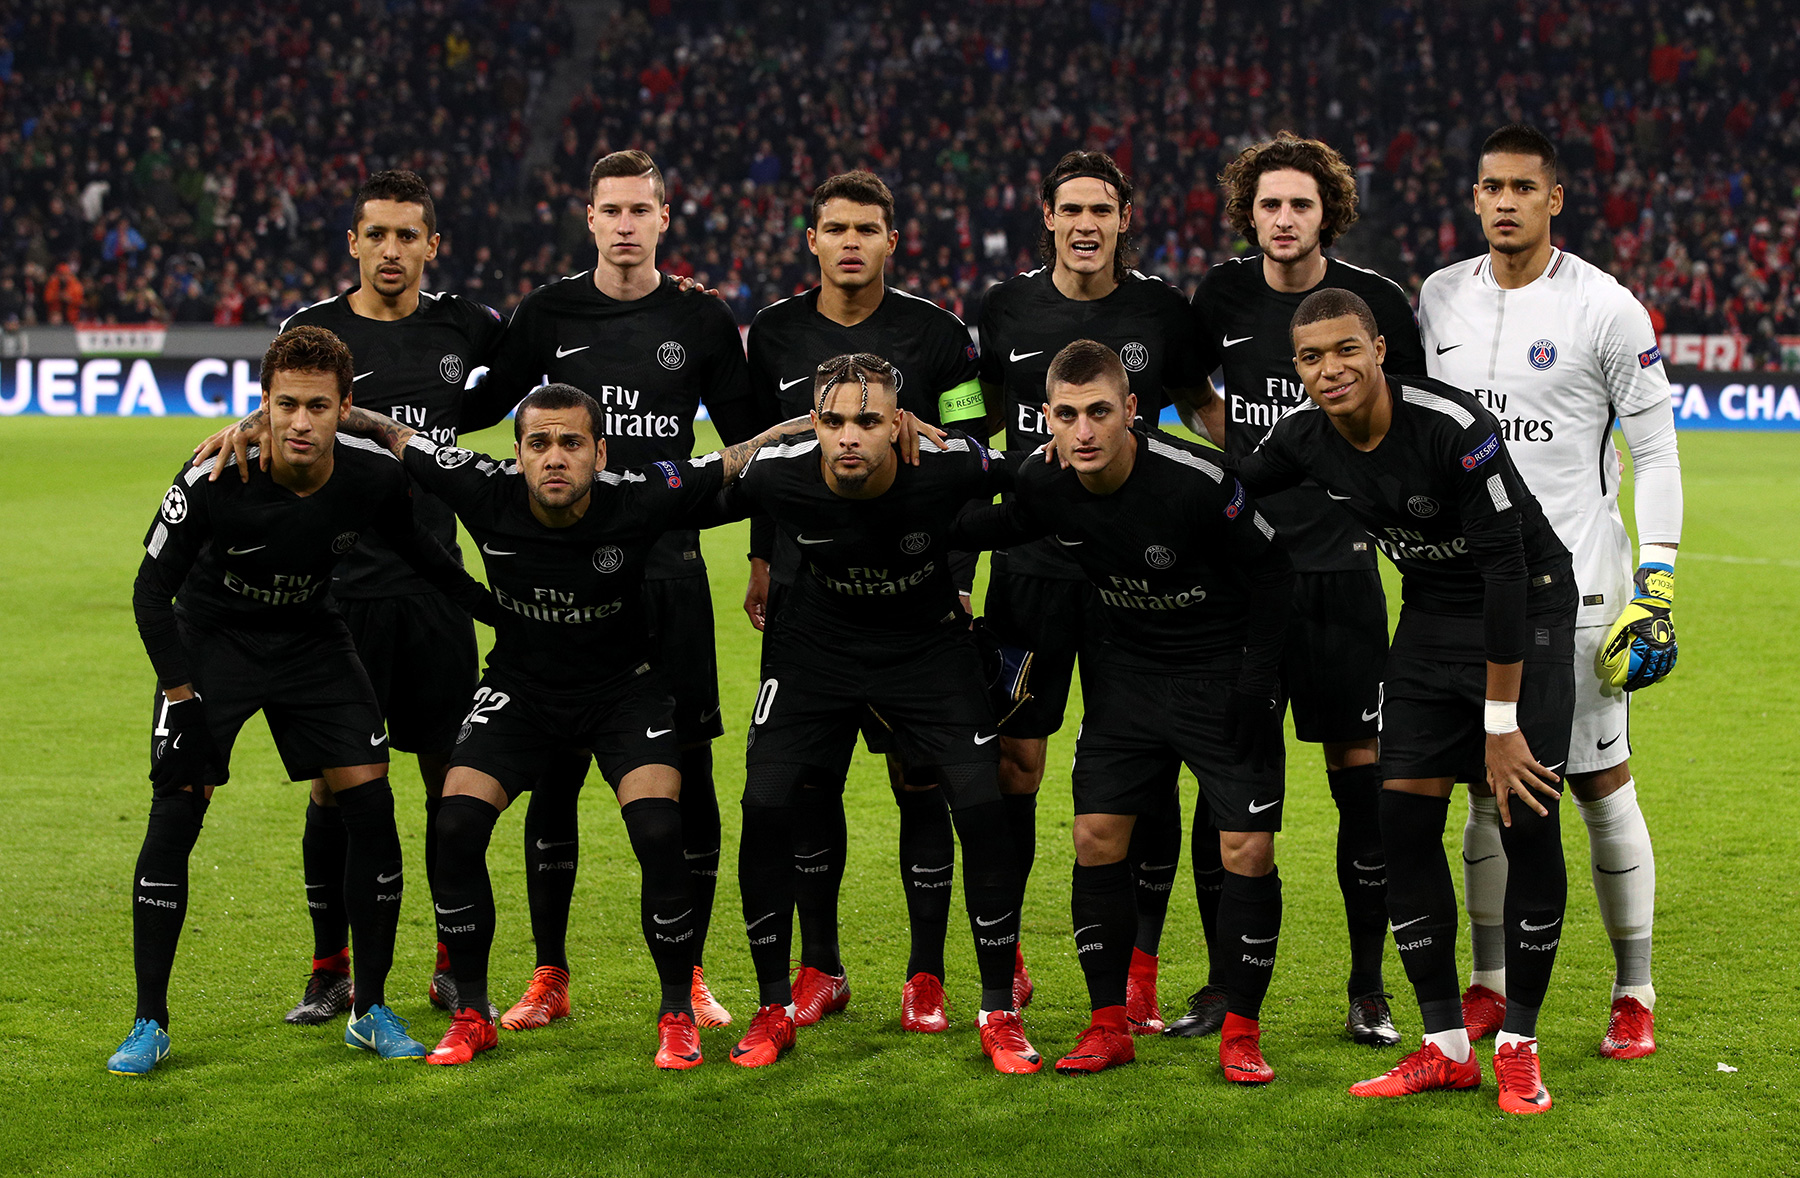 PSG: Predicting PSG's Starting Lineup And Formation For The